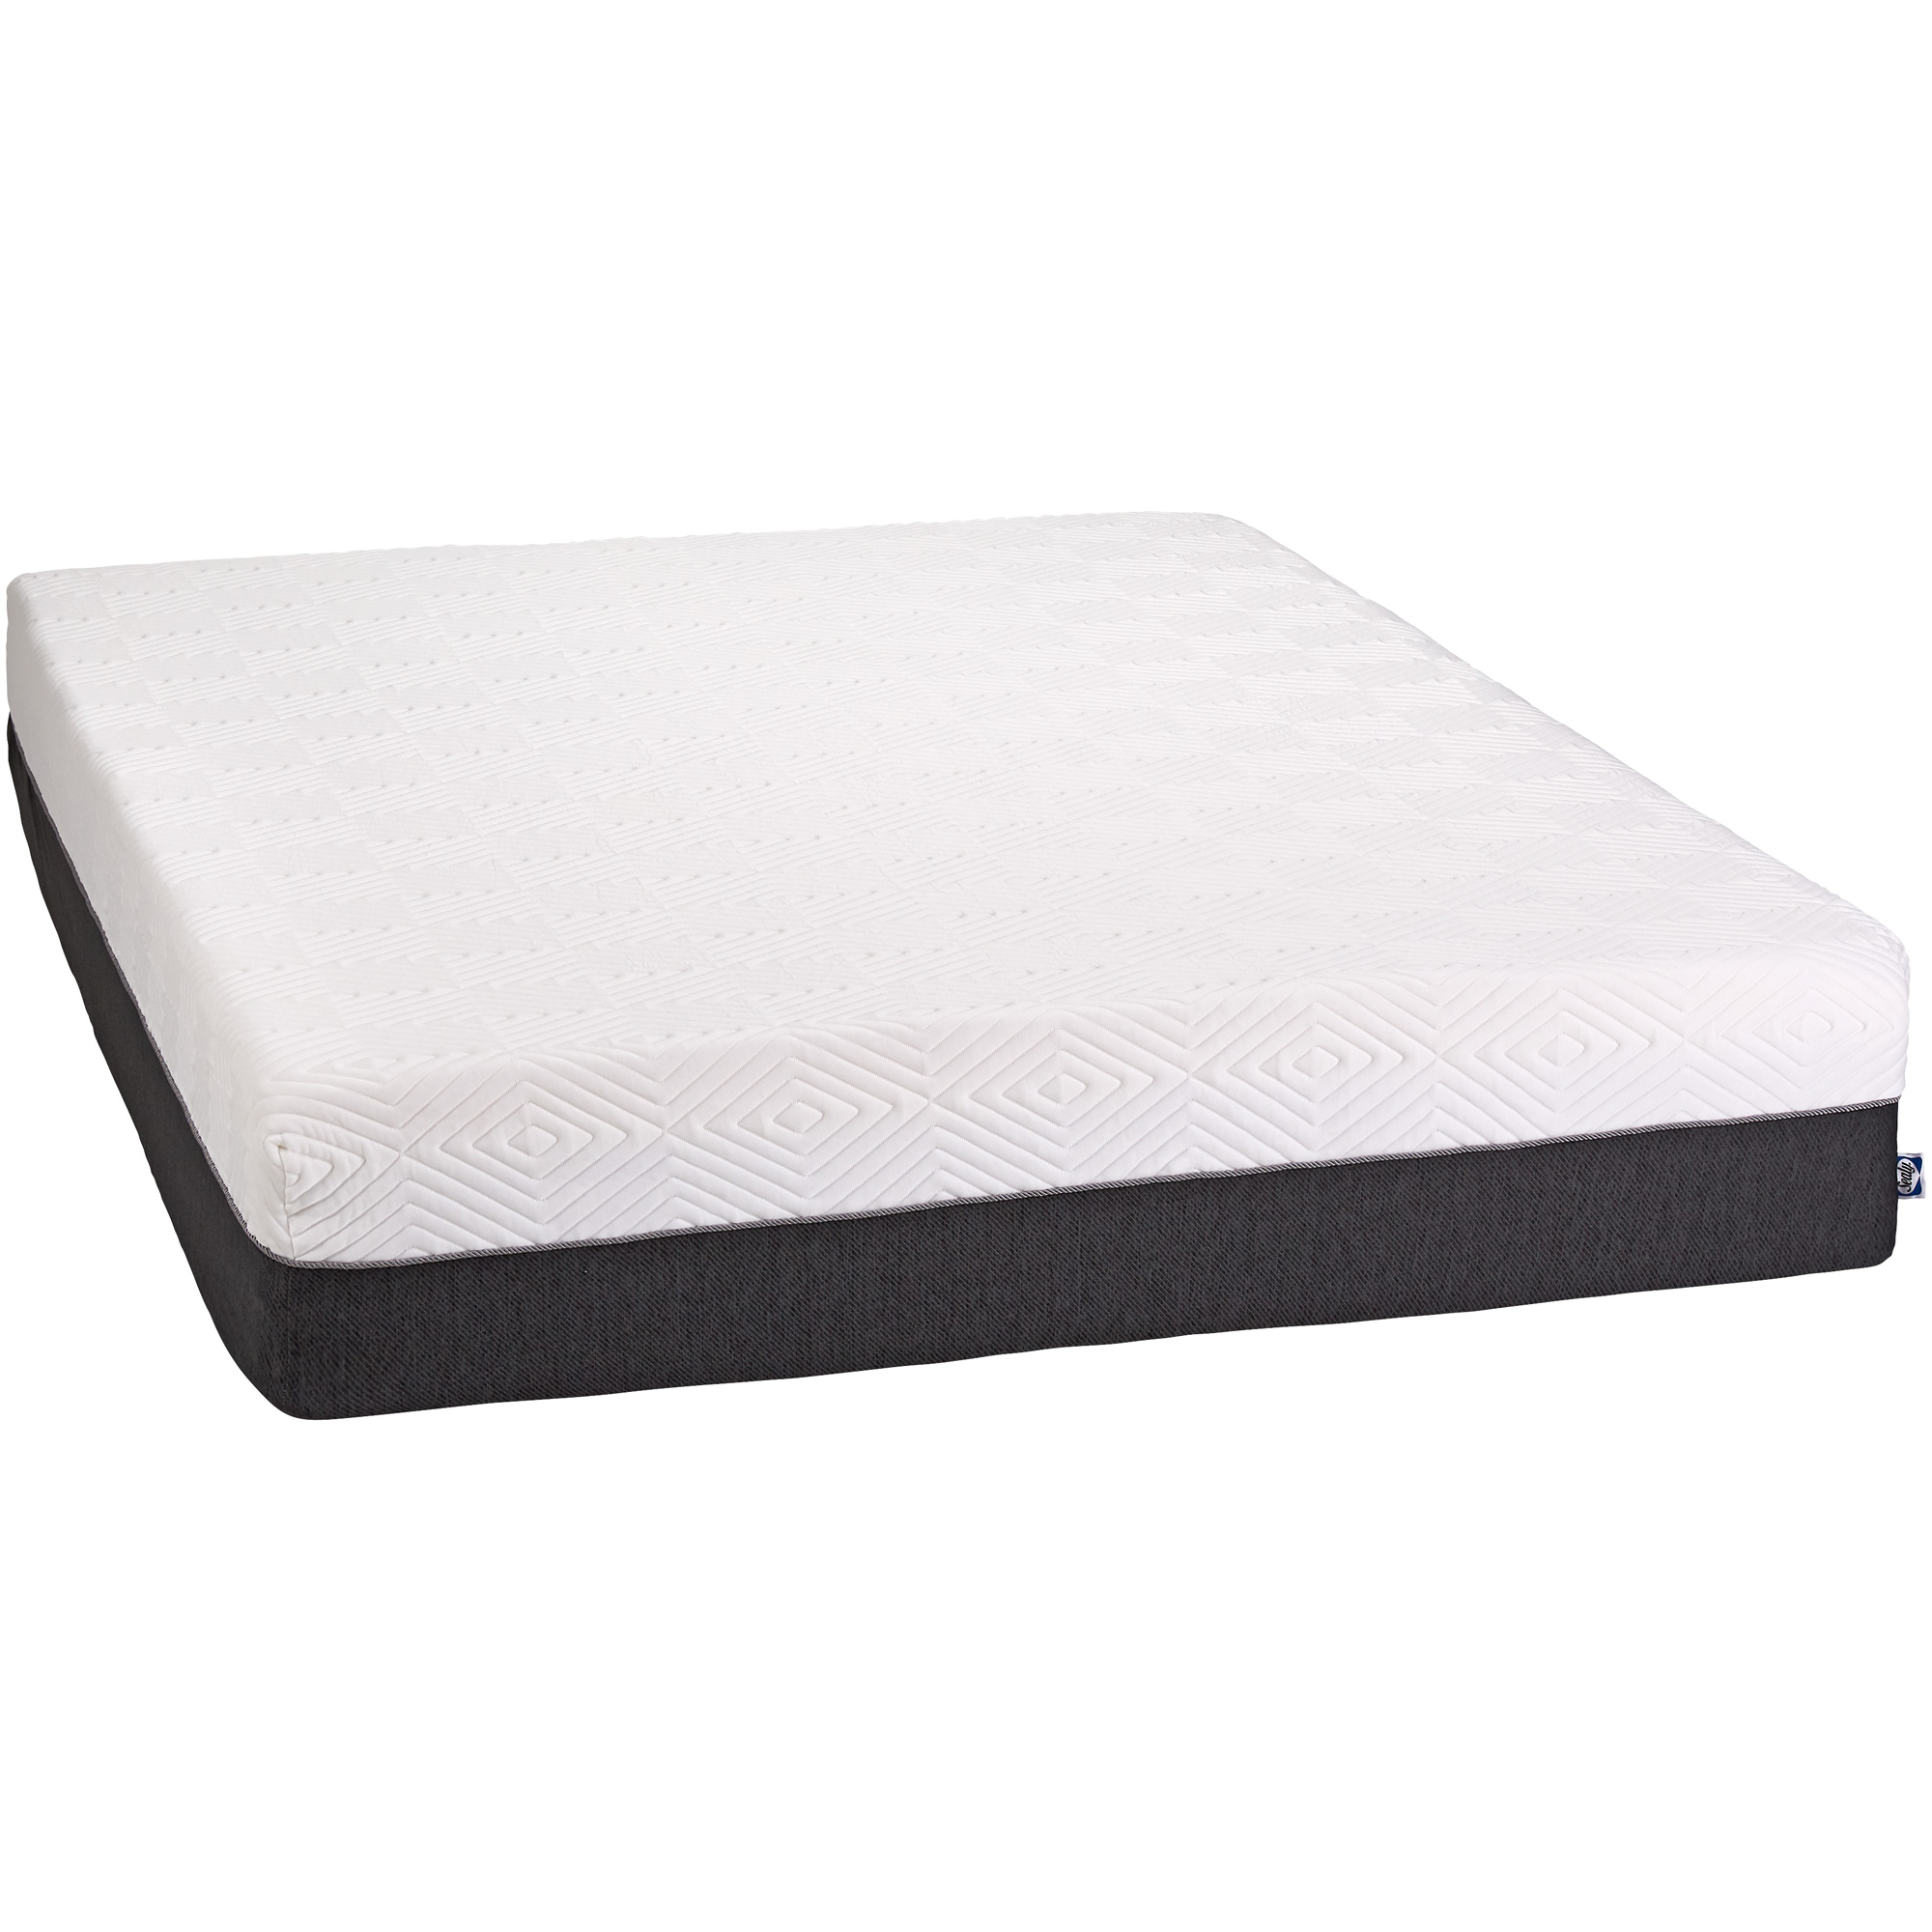 """Slumbercrest 12"""" Hybrid Queen Mattress in a Box"""